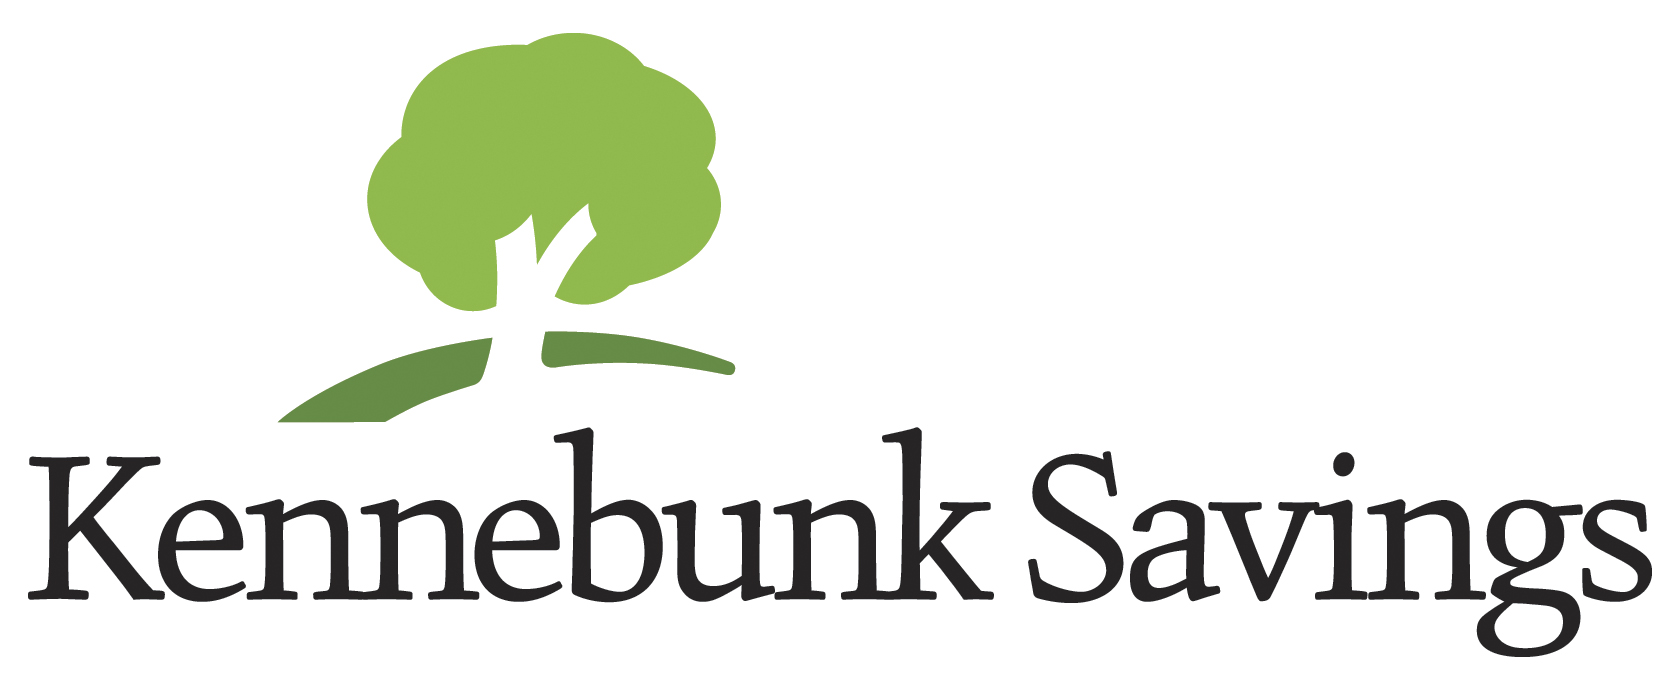 Kennebunk Savings Logo